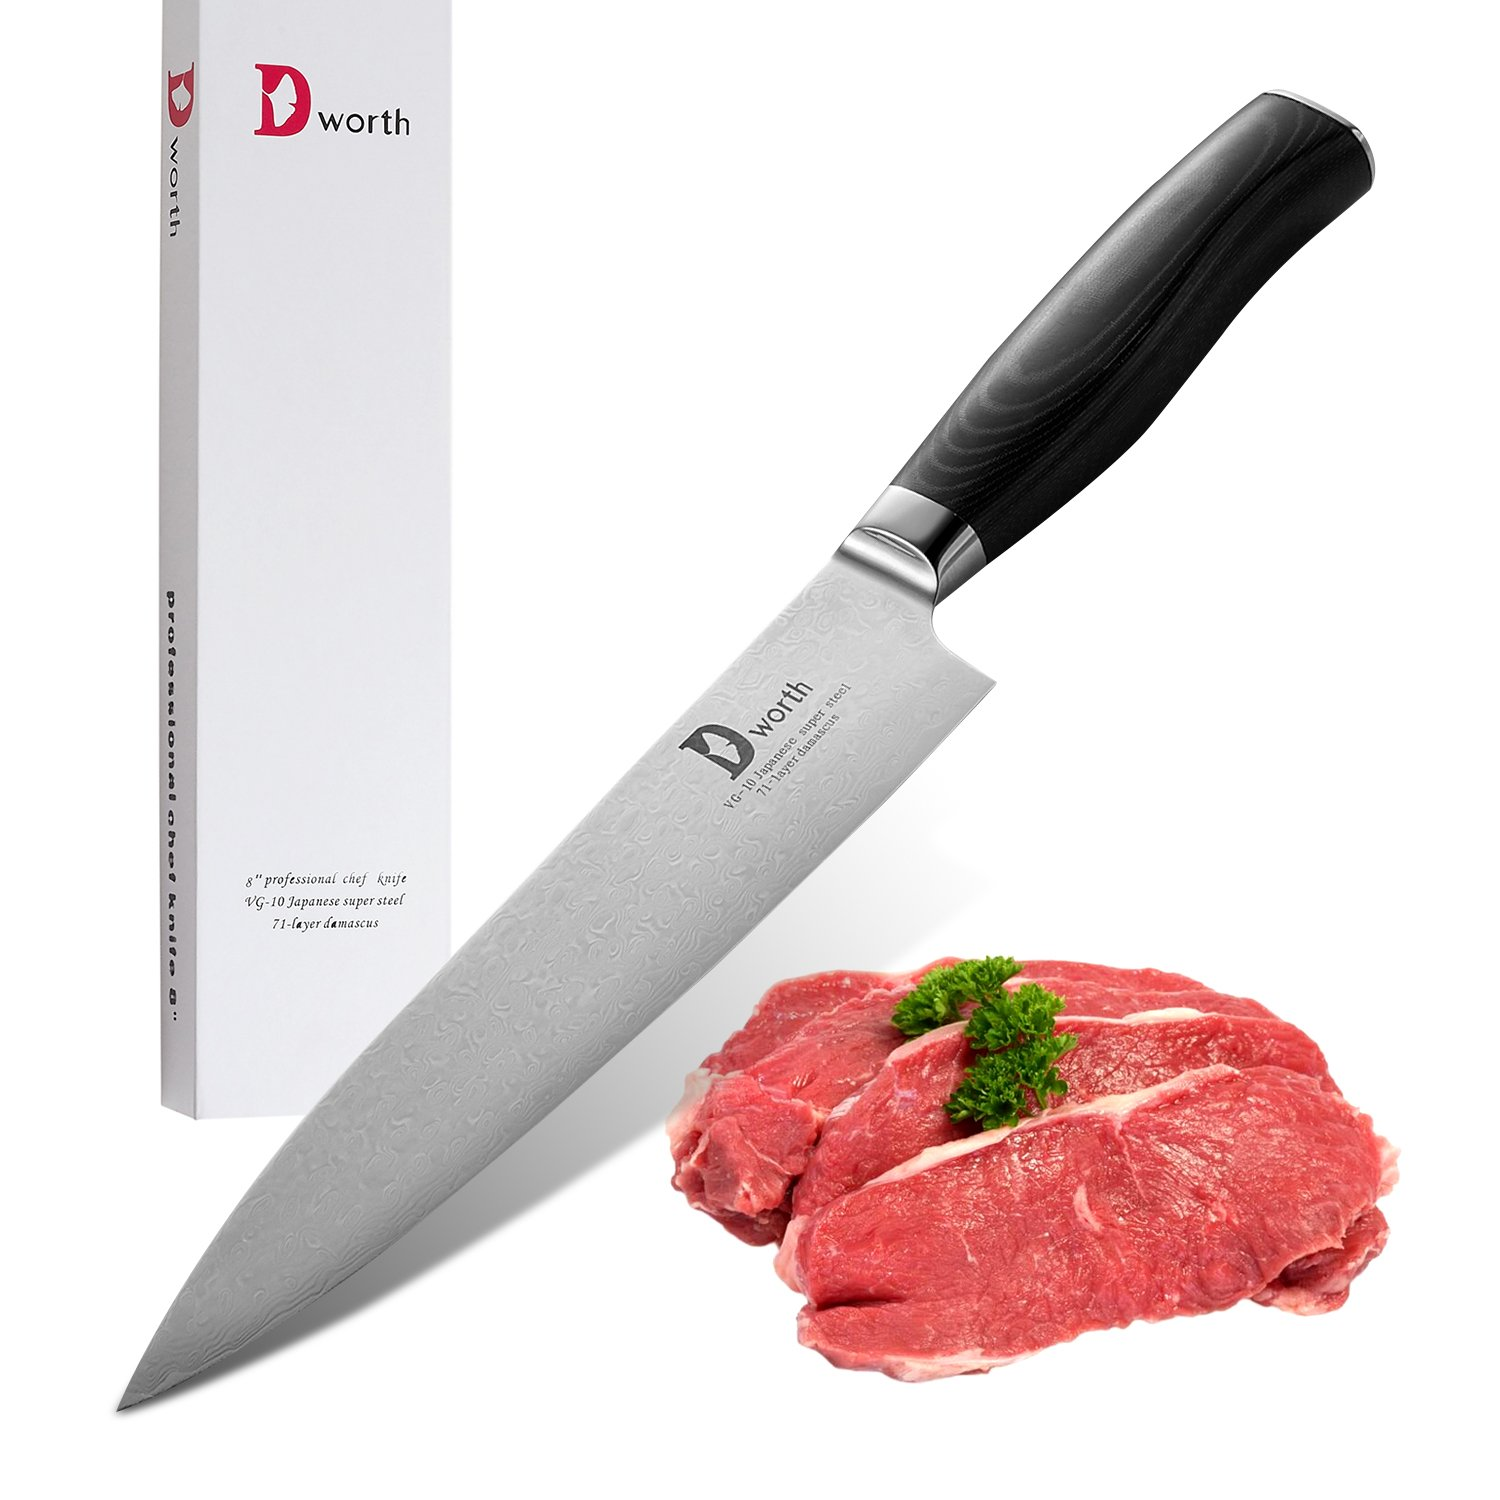 Dworth Chef's Knife - VG10 71 Layer Hammered Finish- 8-Inch Chef knife with Gift Box